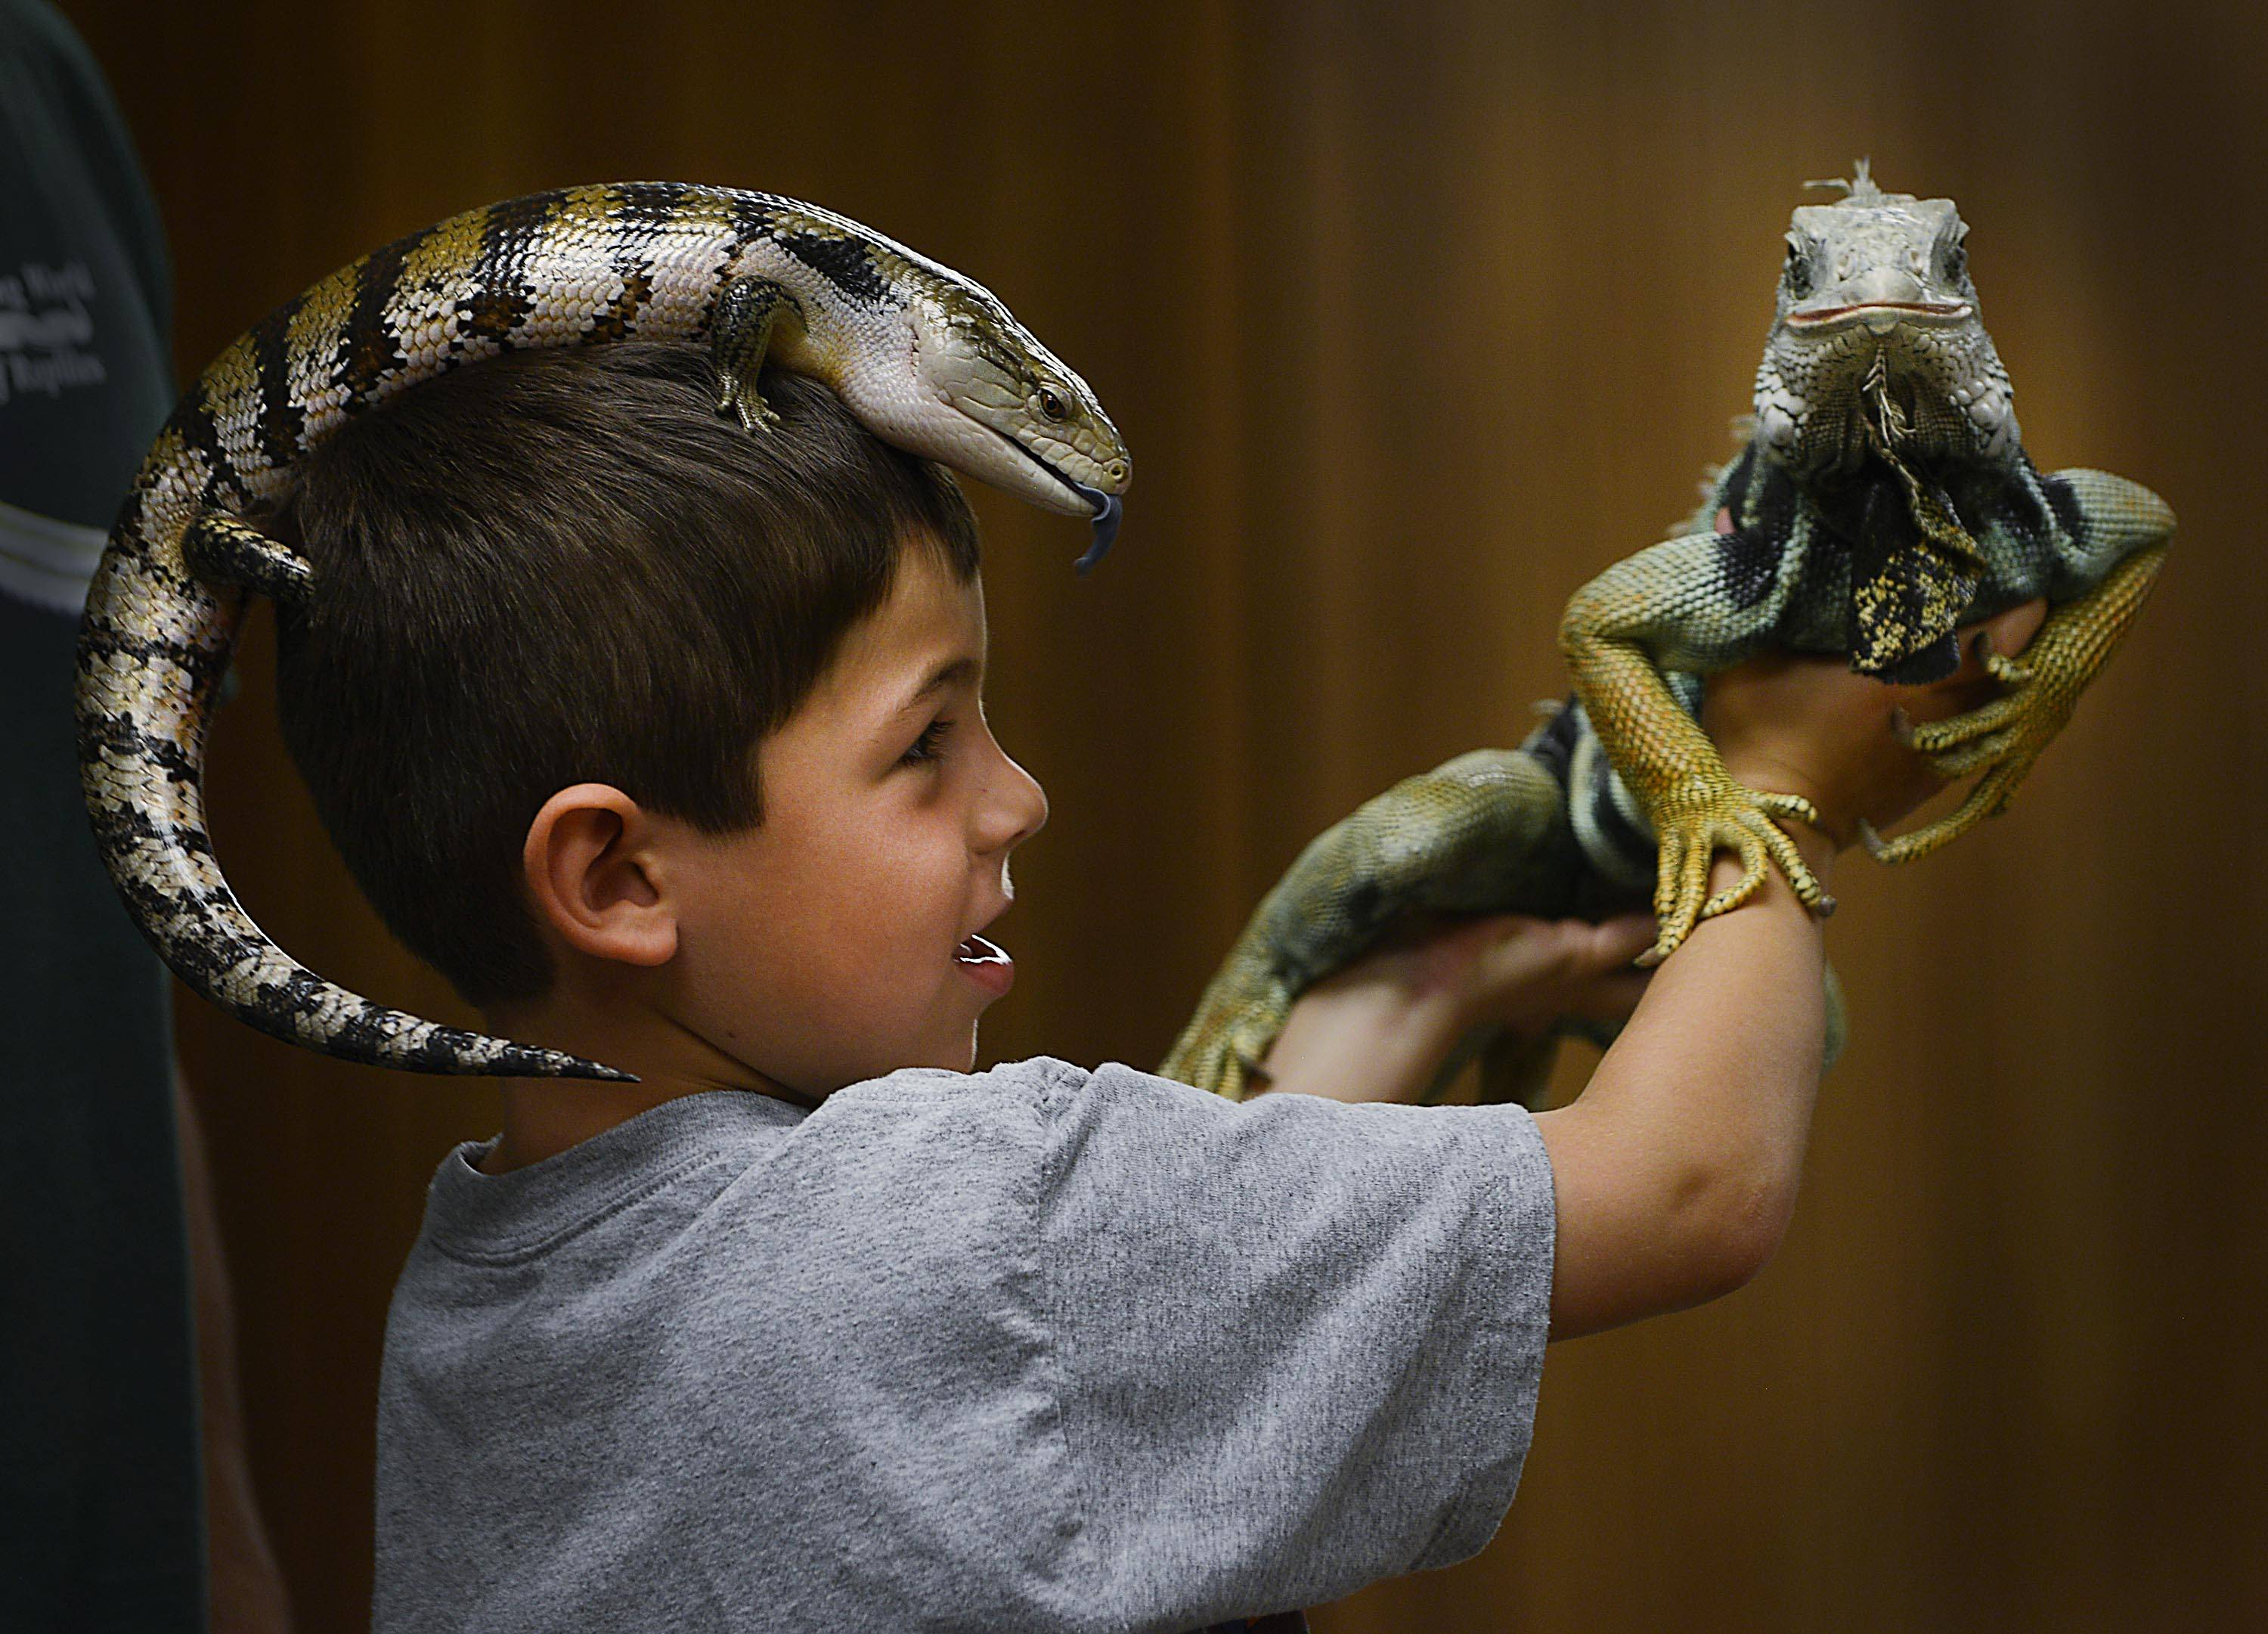 Six-year-old Luke Gadomski, of St. Charles, holds a green iguana while a blue tongue skink sits on his head during a program by Dave DiNaso's Traveling World of Reptiles Monday at the St. Charles Library.